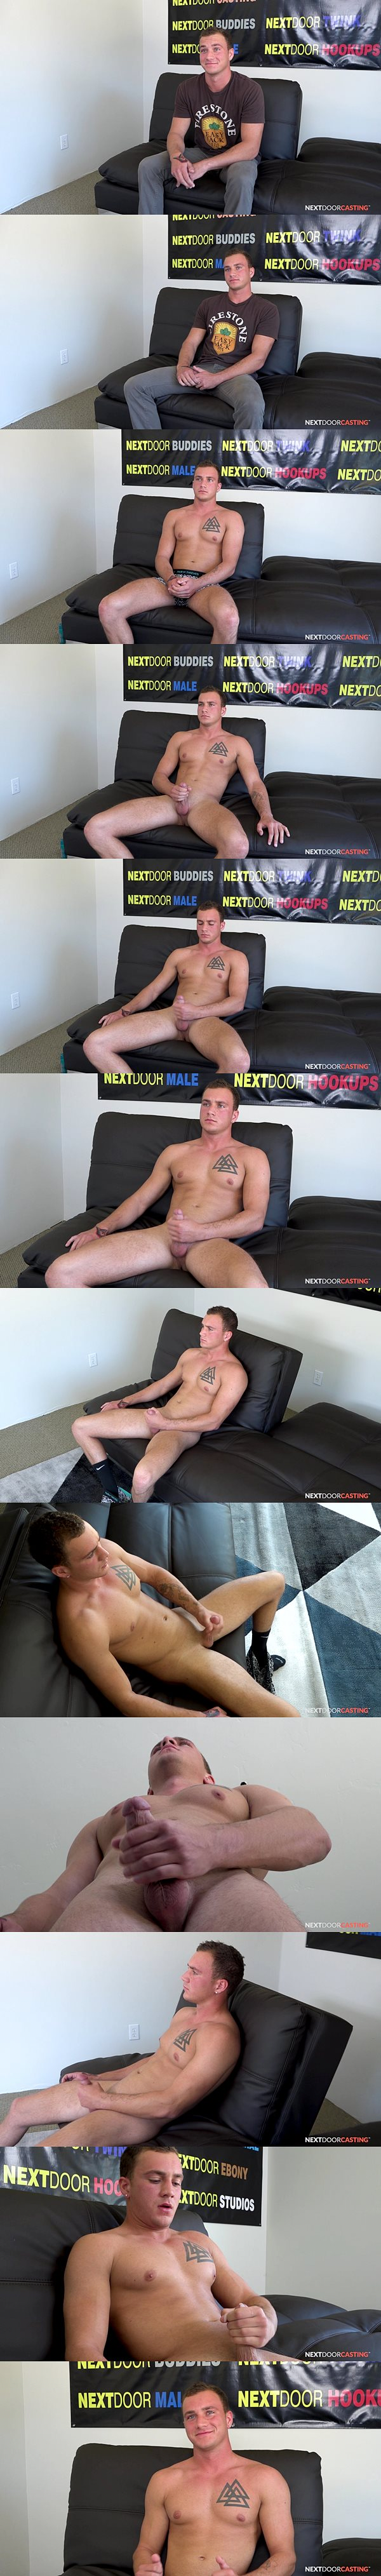 Good looking straight college student Logan Thomas breaks in gay porn and jerks off on camera for the first time at Nextdoorstudios